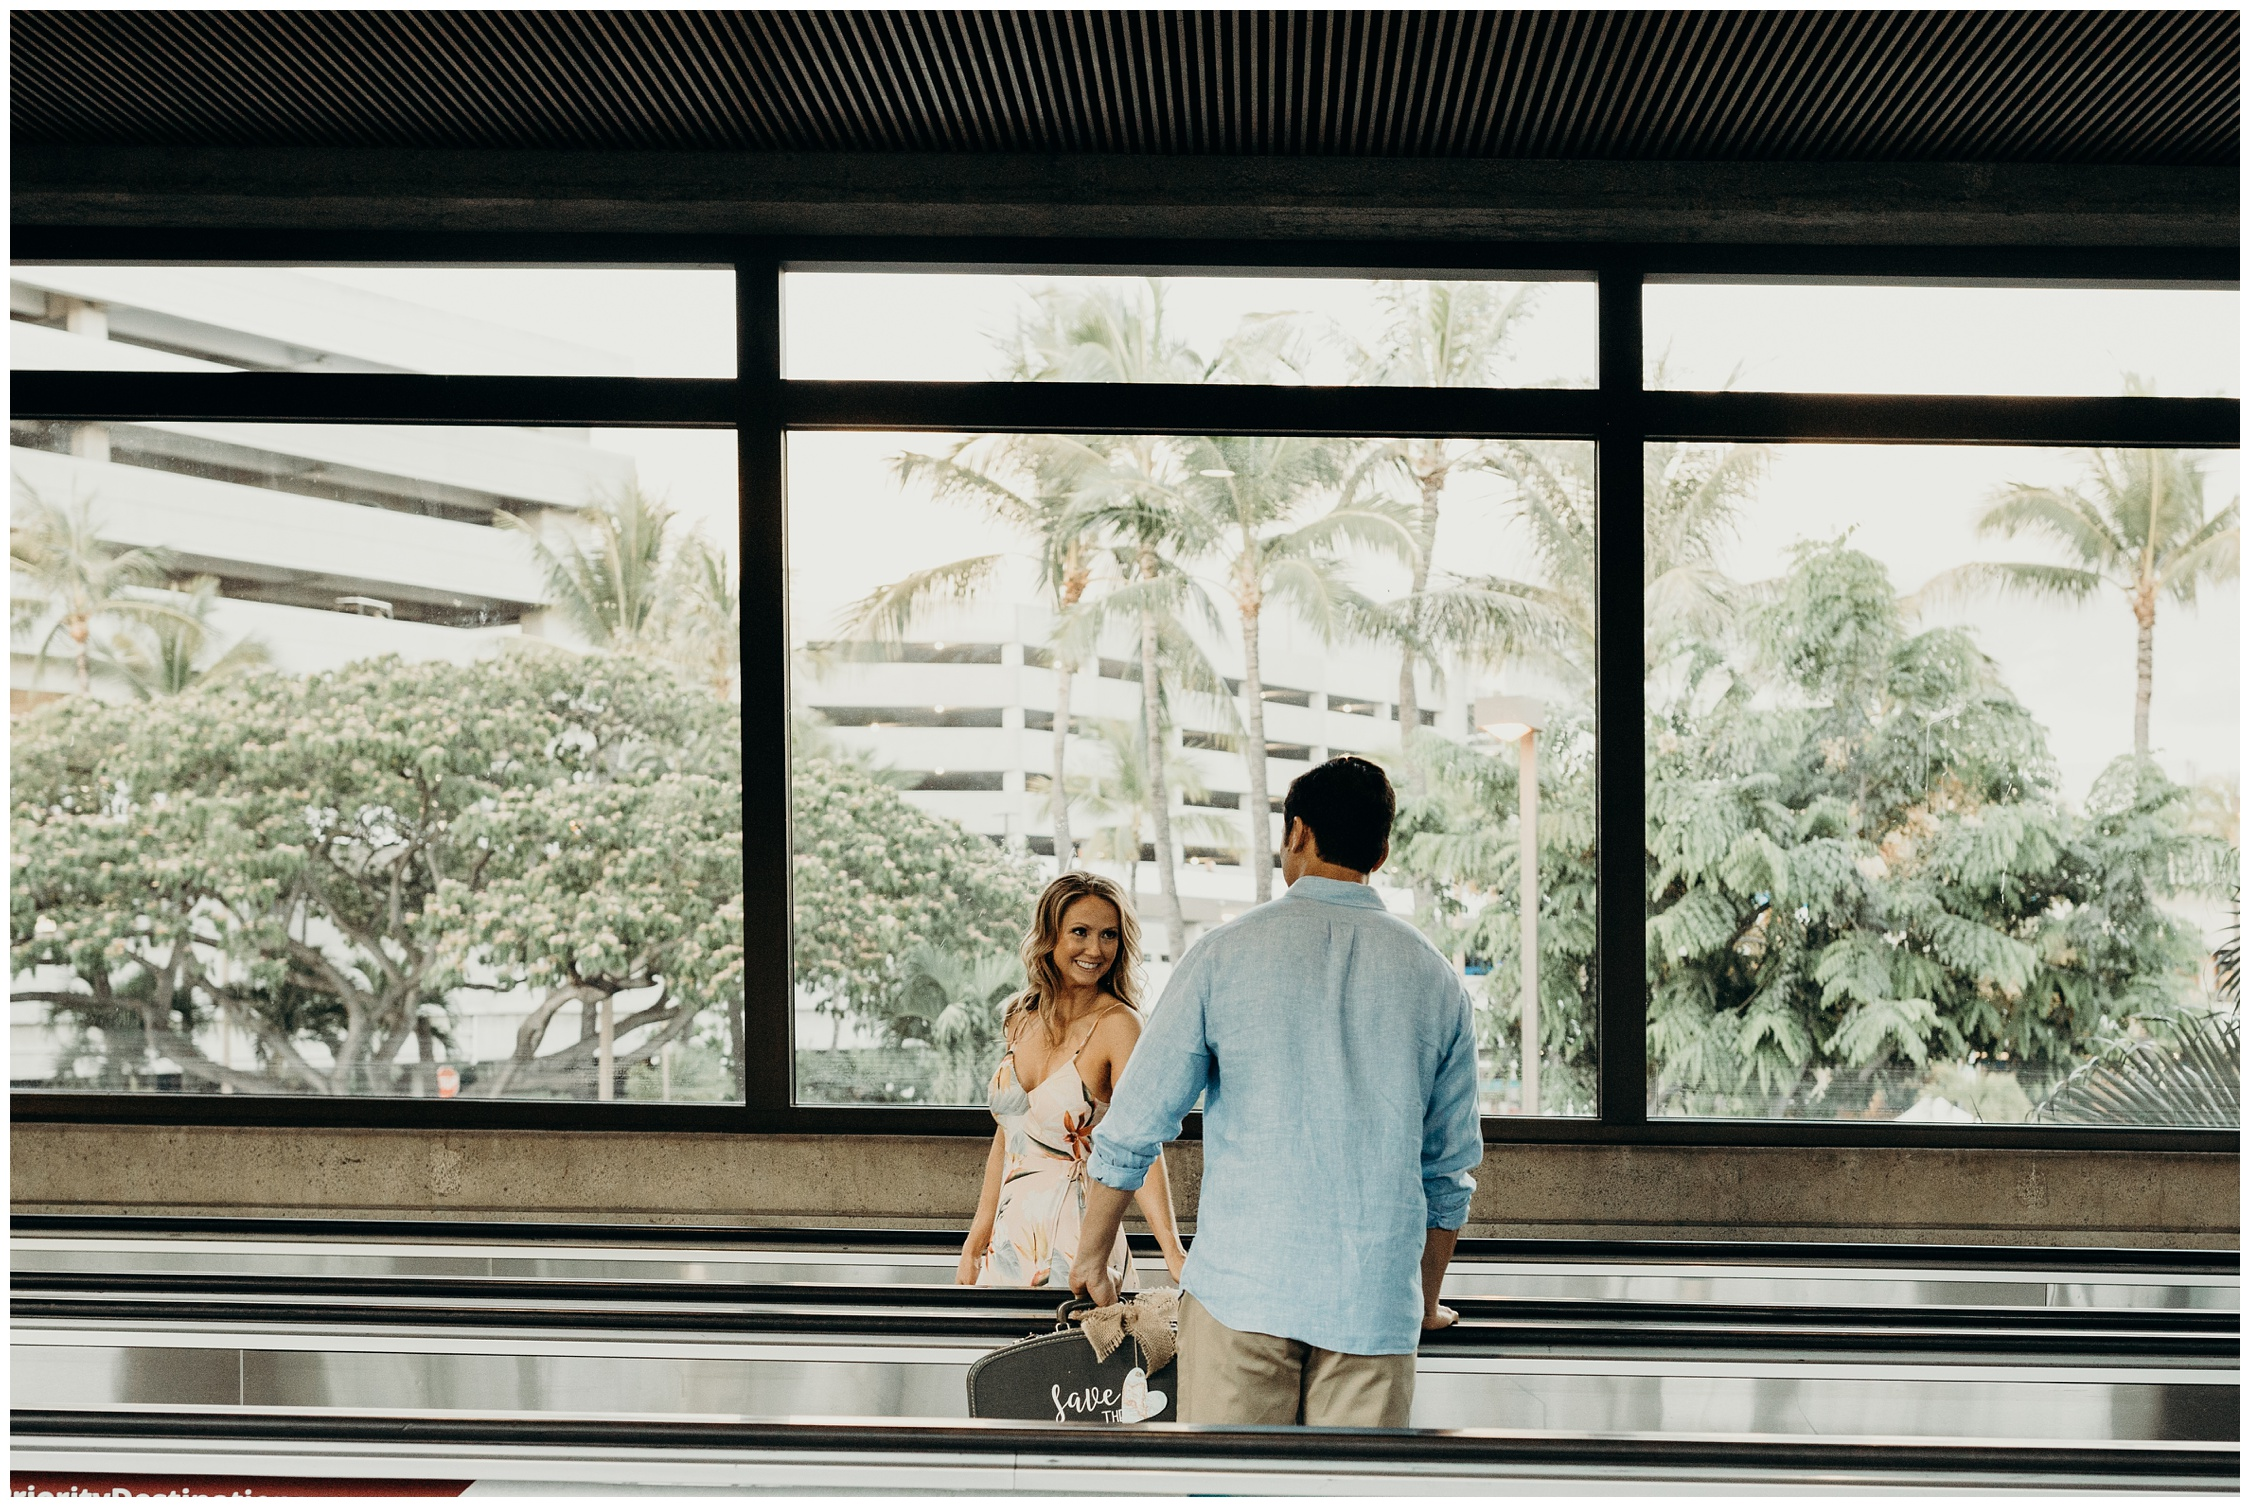 Hawaii-Engagement-Photographer-Keani-Bakula-Honolulu-International-Airport_0024.jpg